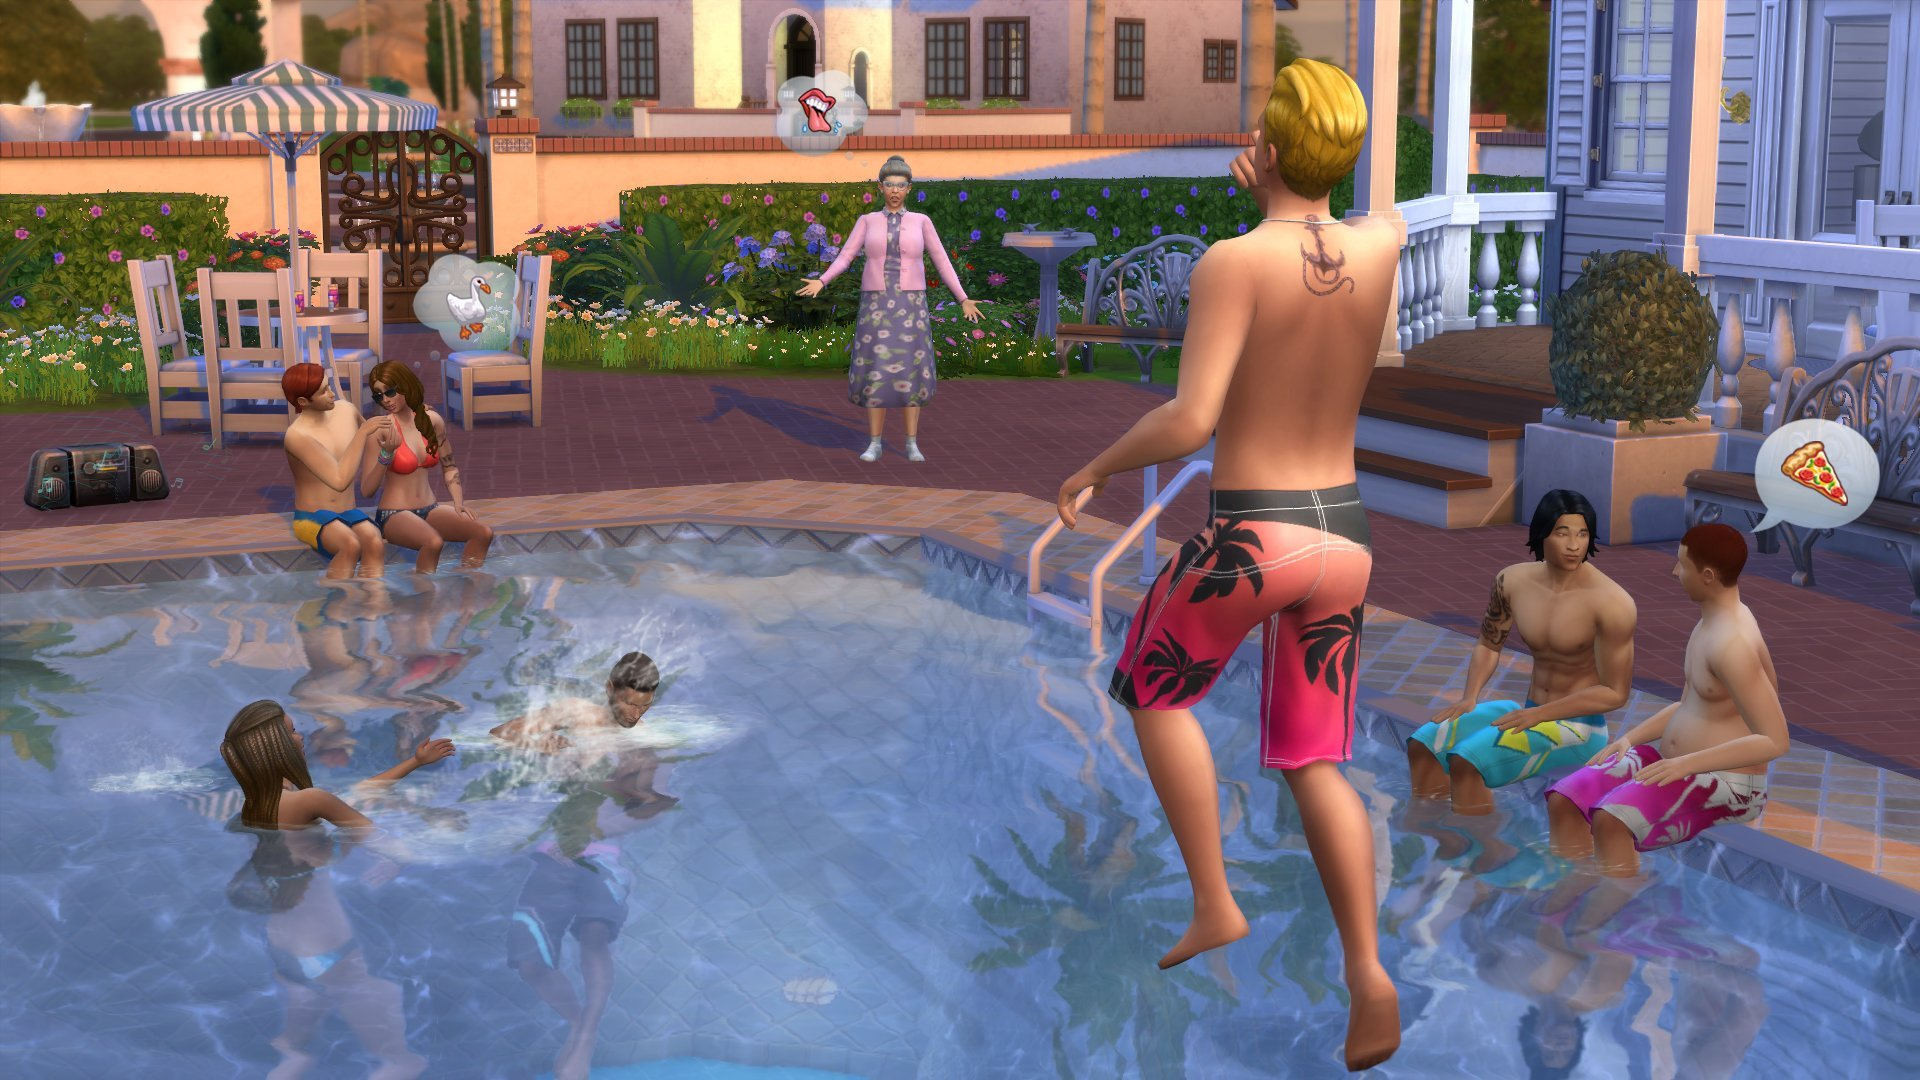 The Sims 4 [Online Game Code] by Electronic Arts (Image #3)